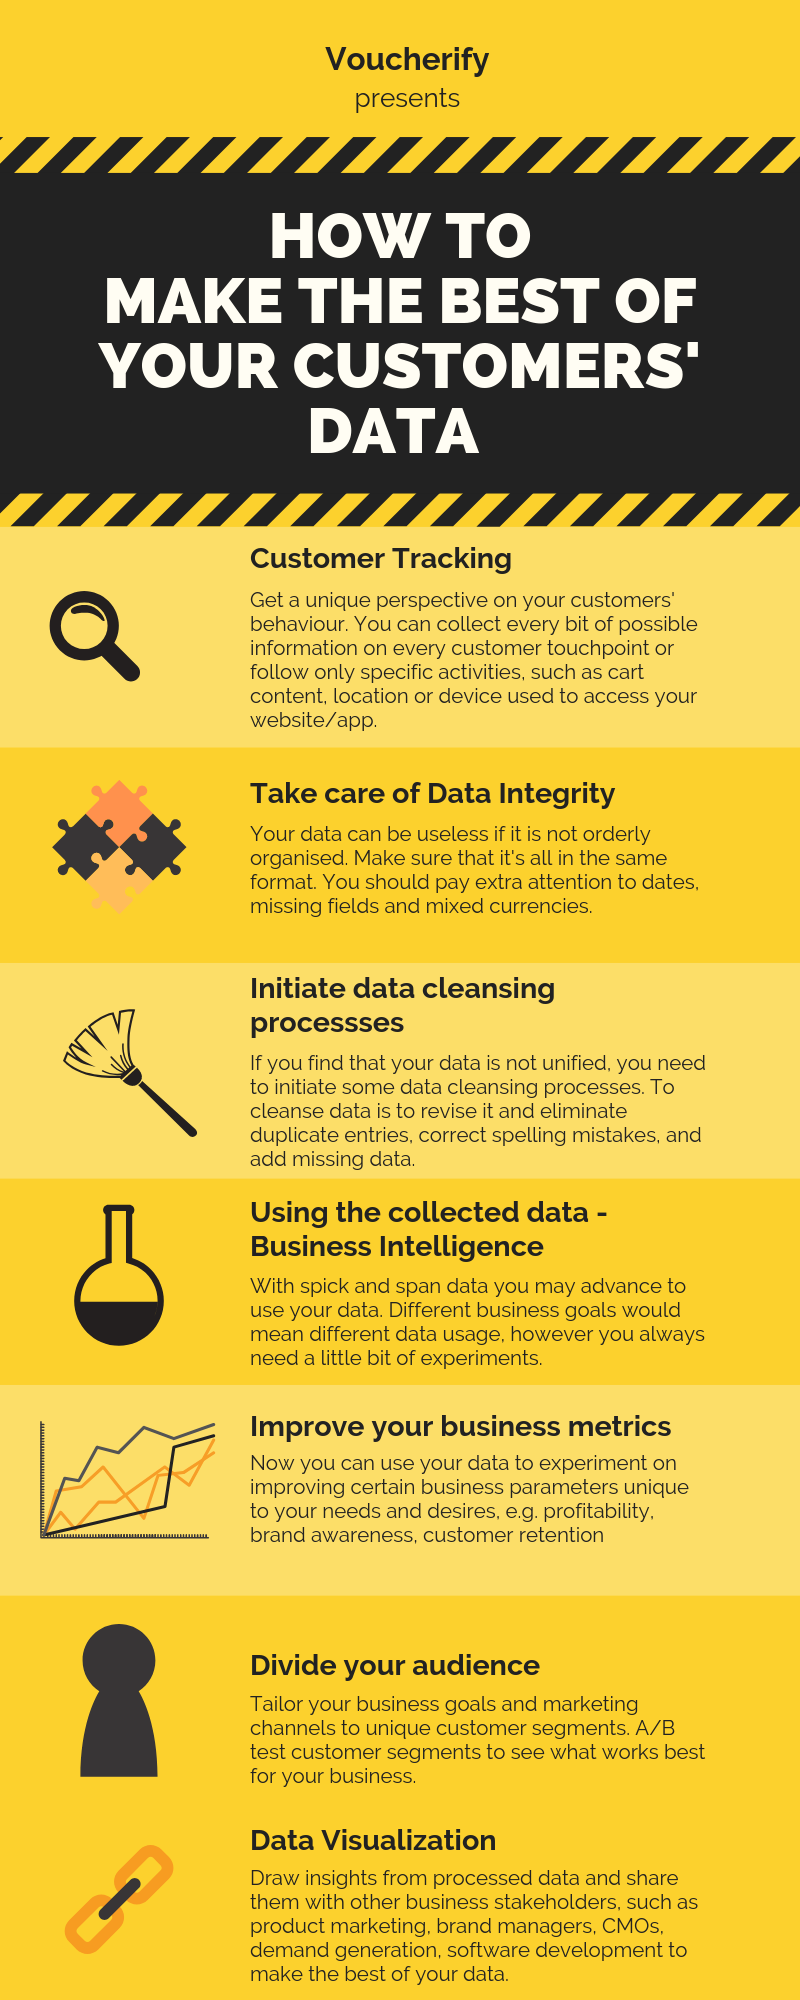 Voucherify guide on data collection and usage